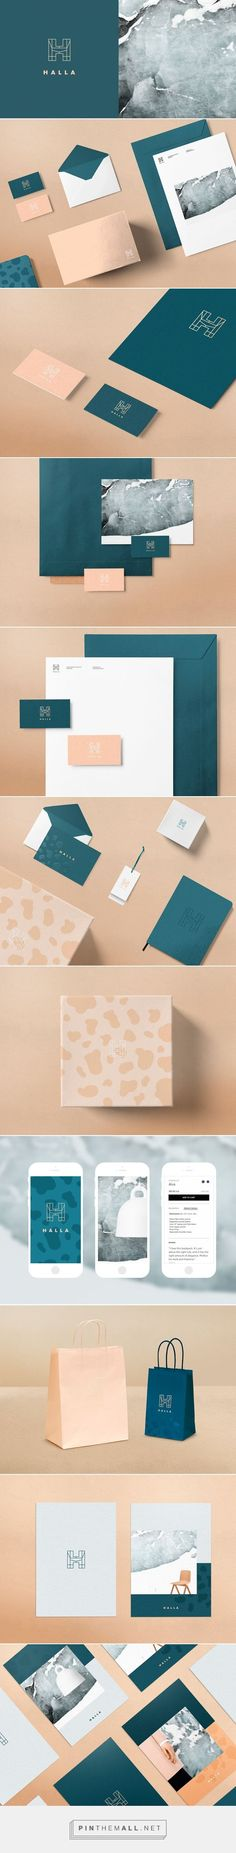 Halla Fashion and Furniture Shop Branding by Tiia Vahla | Fivestar Branding Agency – Design and Branding Agency & Curated Inspiration Gallery